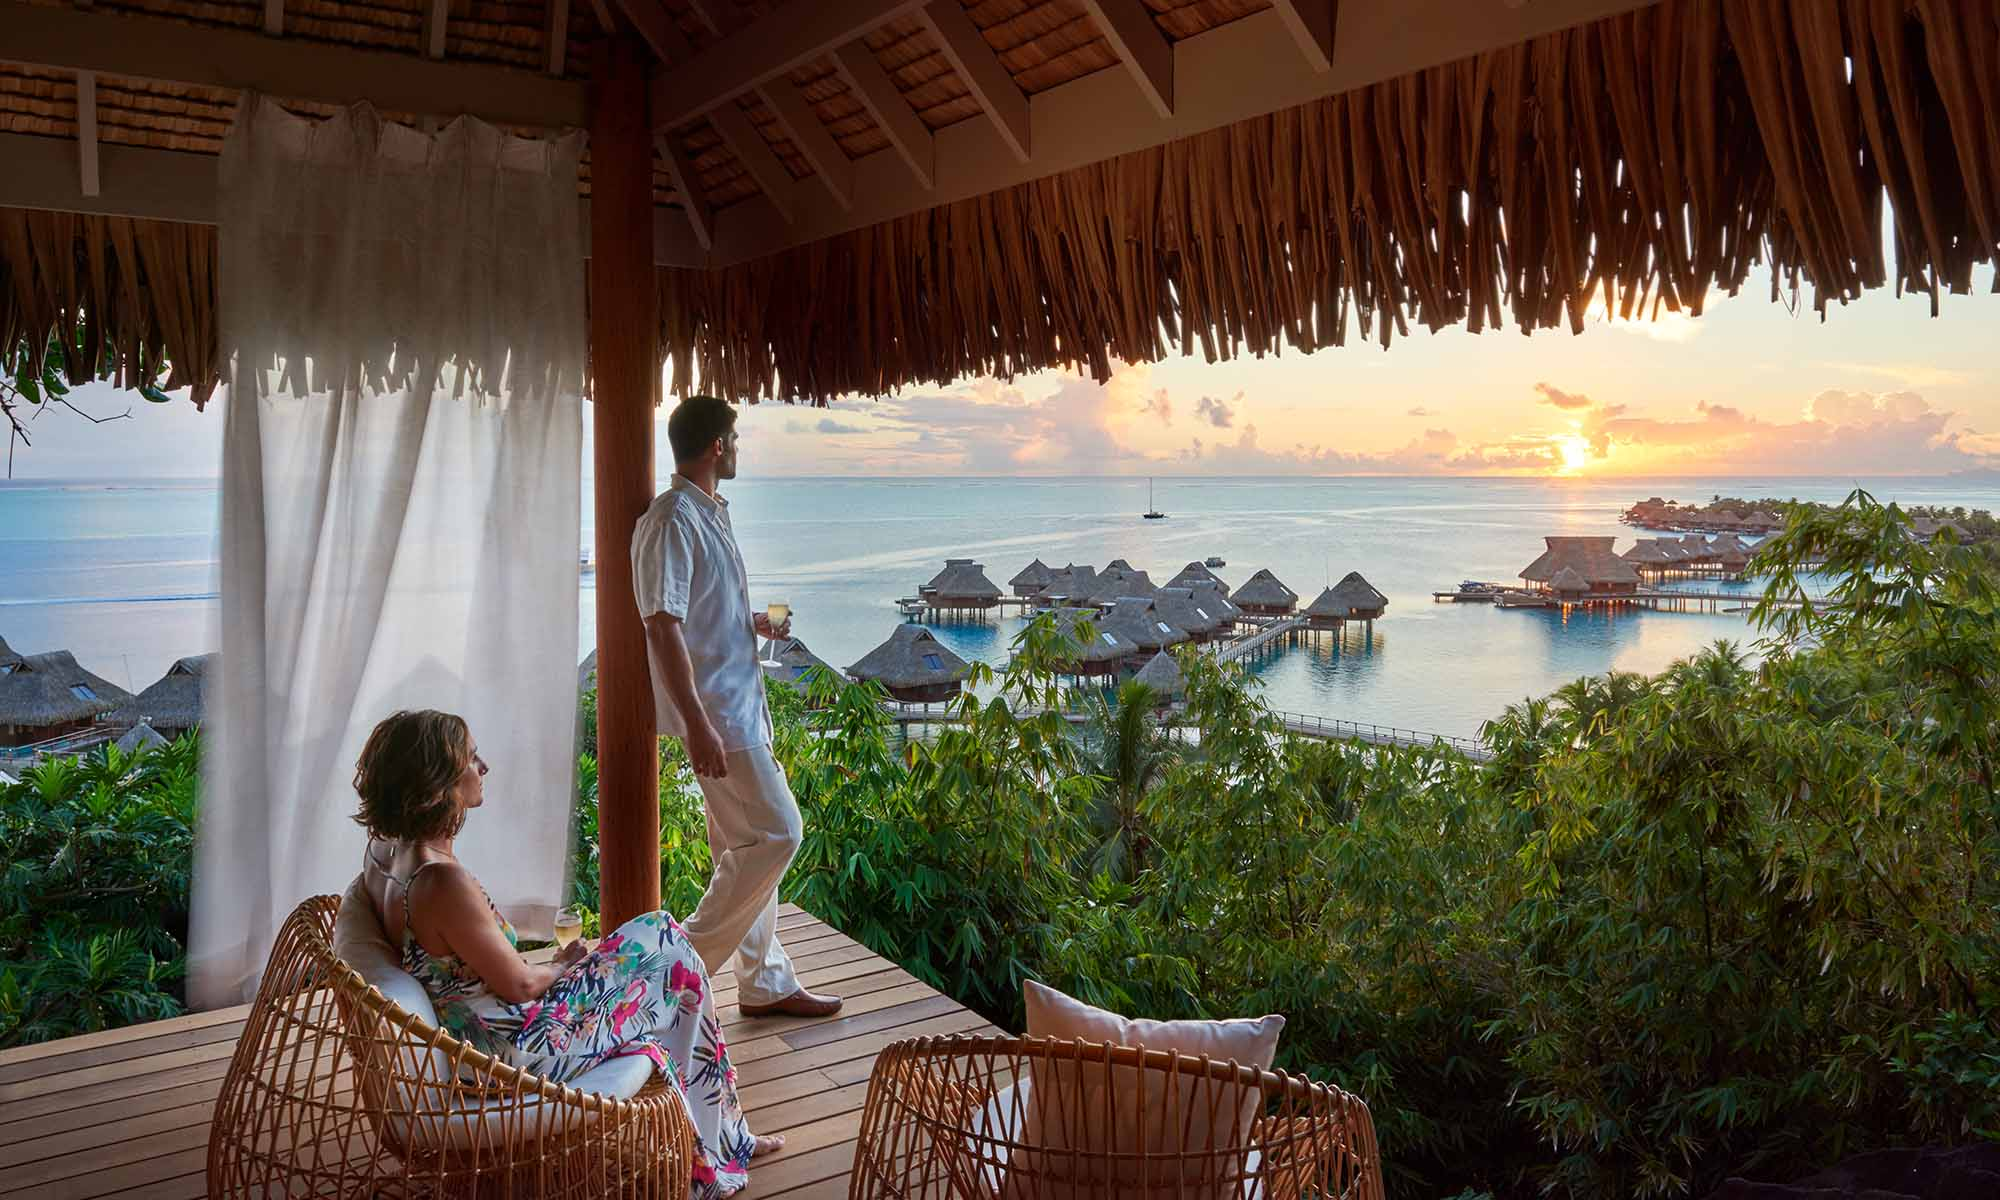 Million Dollar View at the Conrad Bora Bora Nui